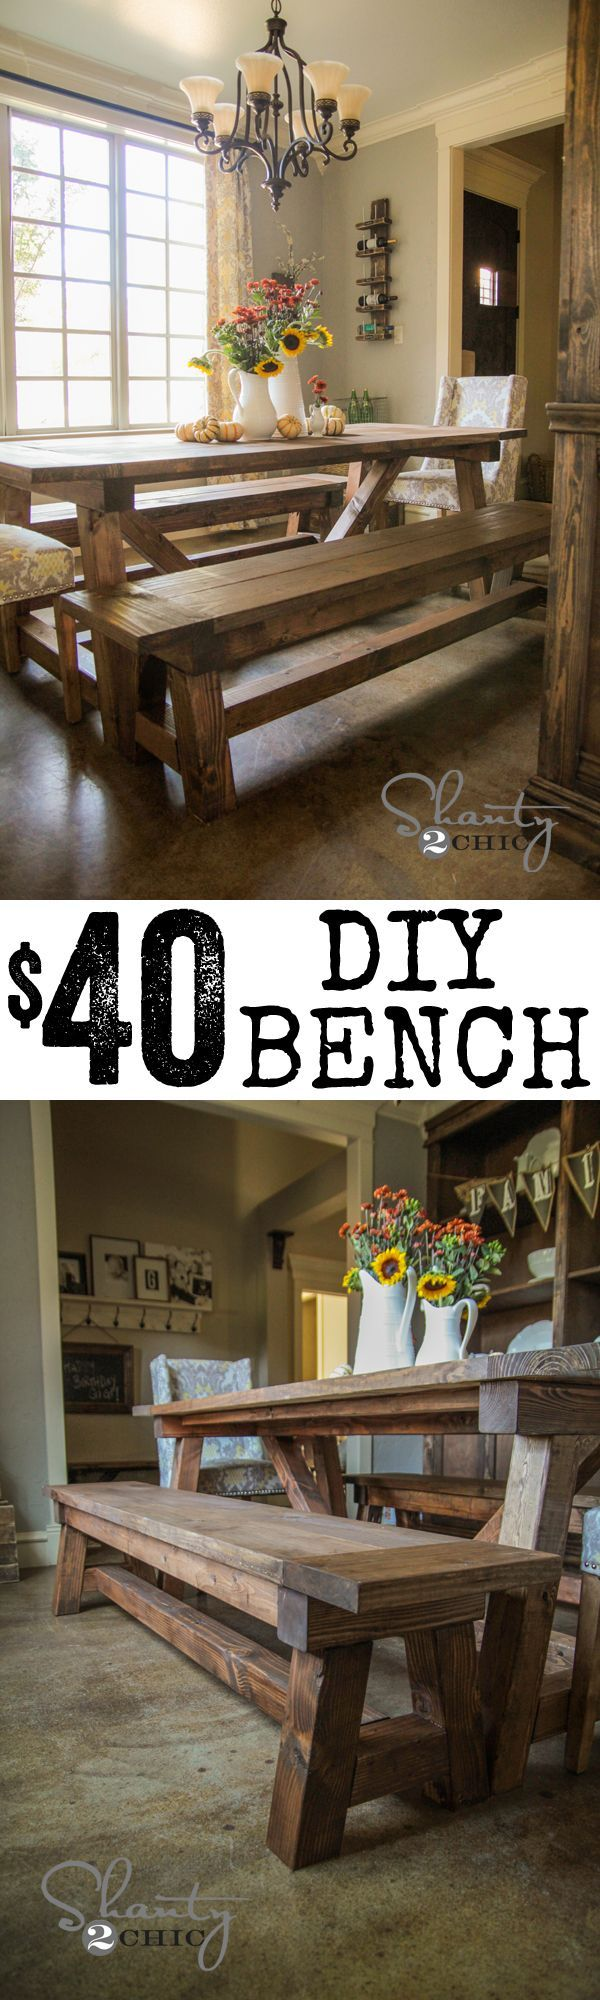 DIY $40 Bench for the Dining Table - Shanty 2 Chic